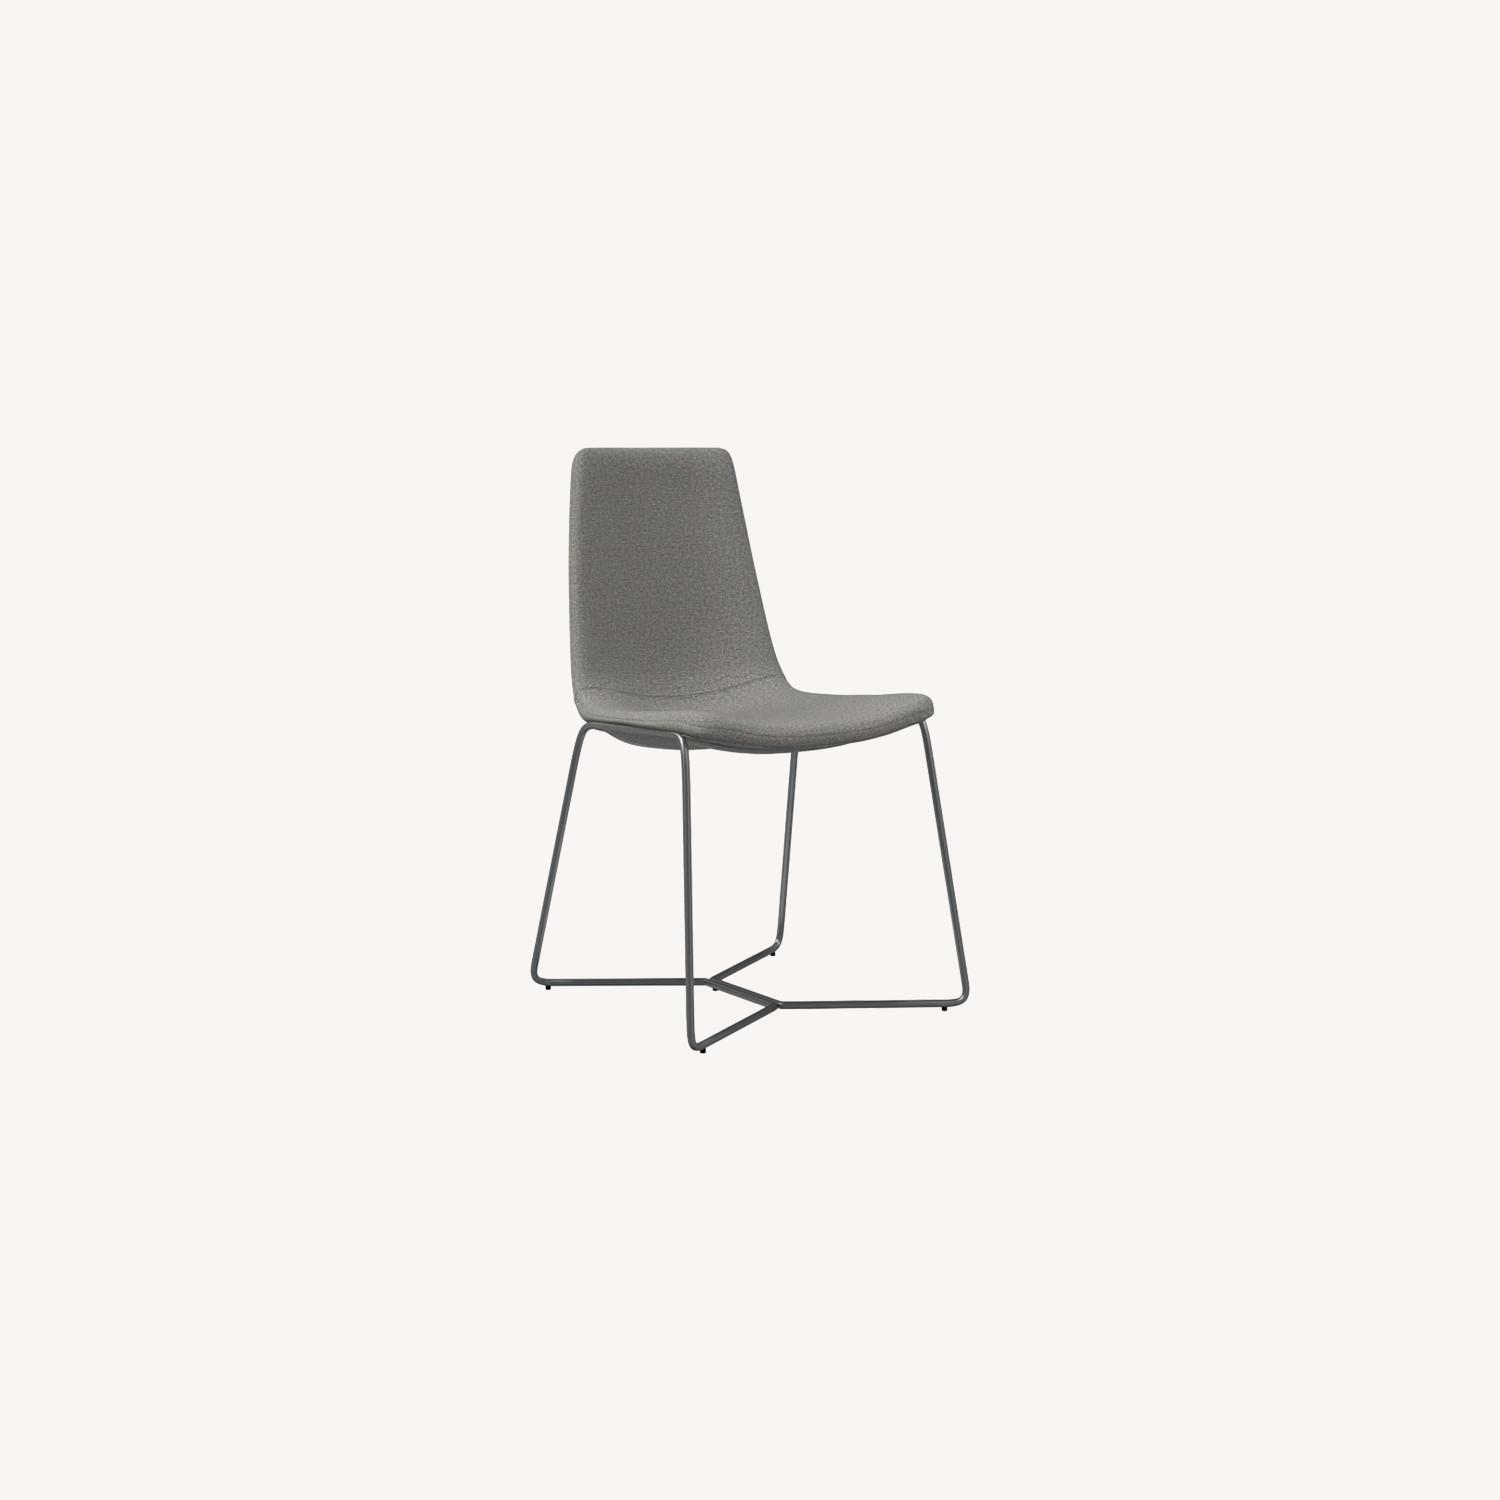 West Elm Slope Upholstered Dining Chair - image-0